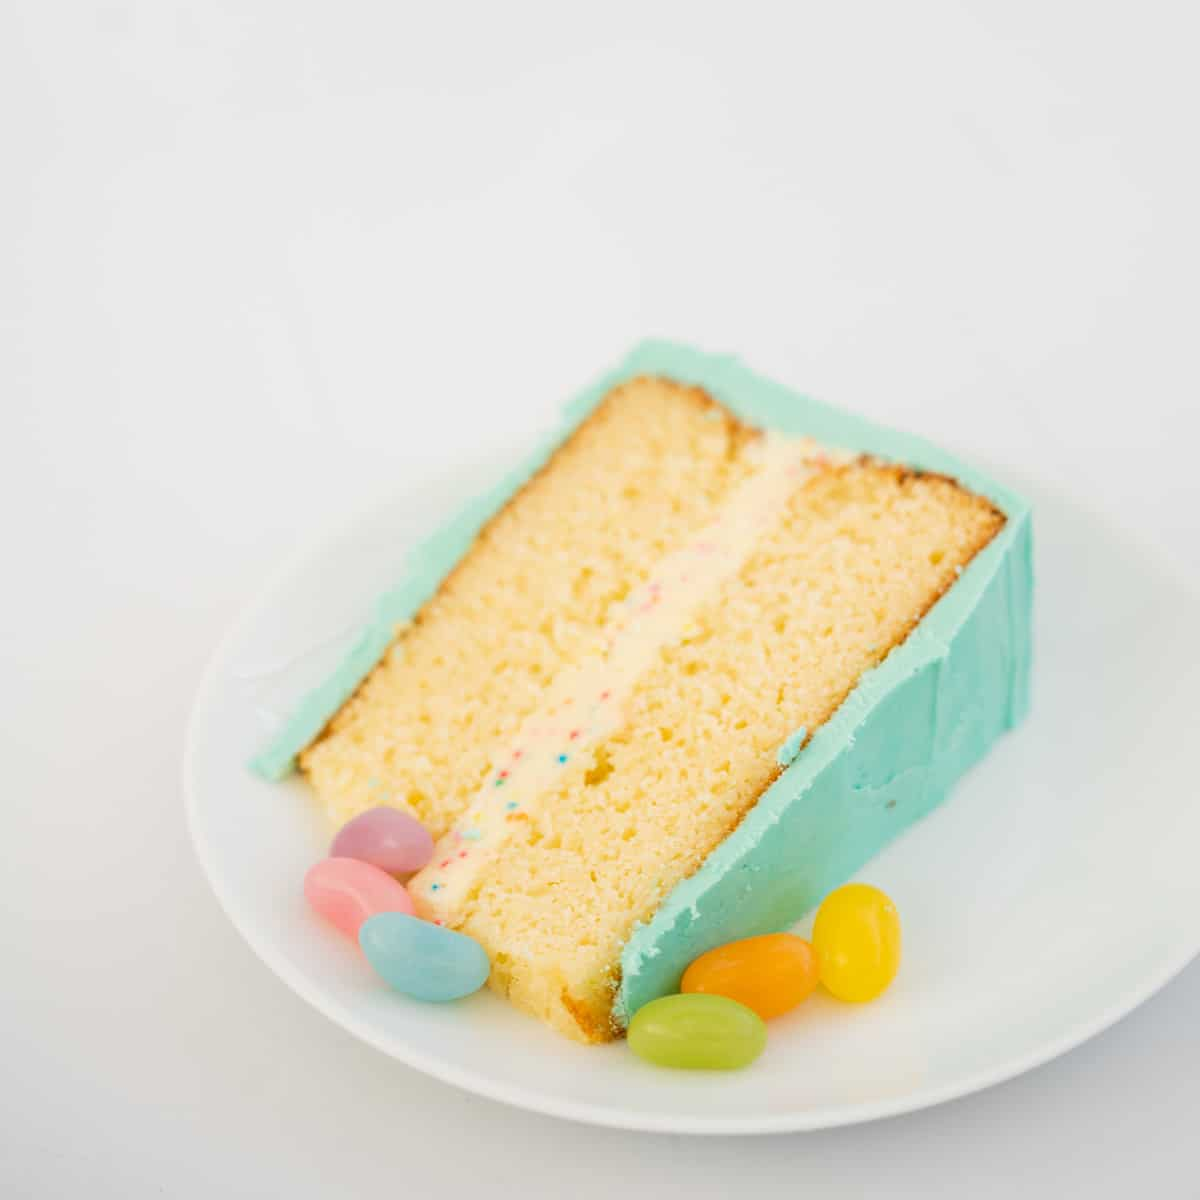 A slice of rainbow cake ready to serve on a white plate.